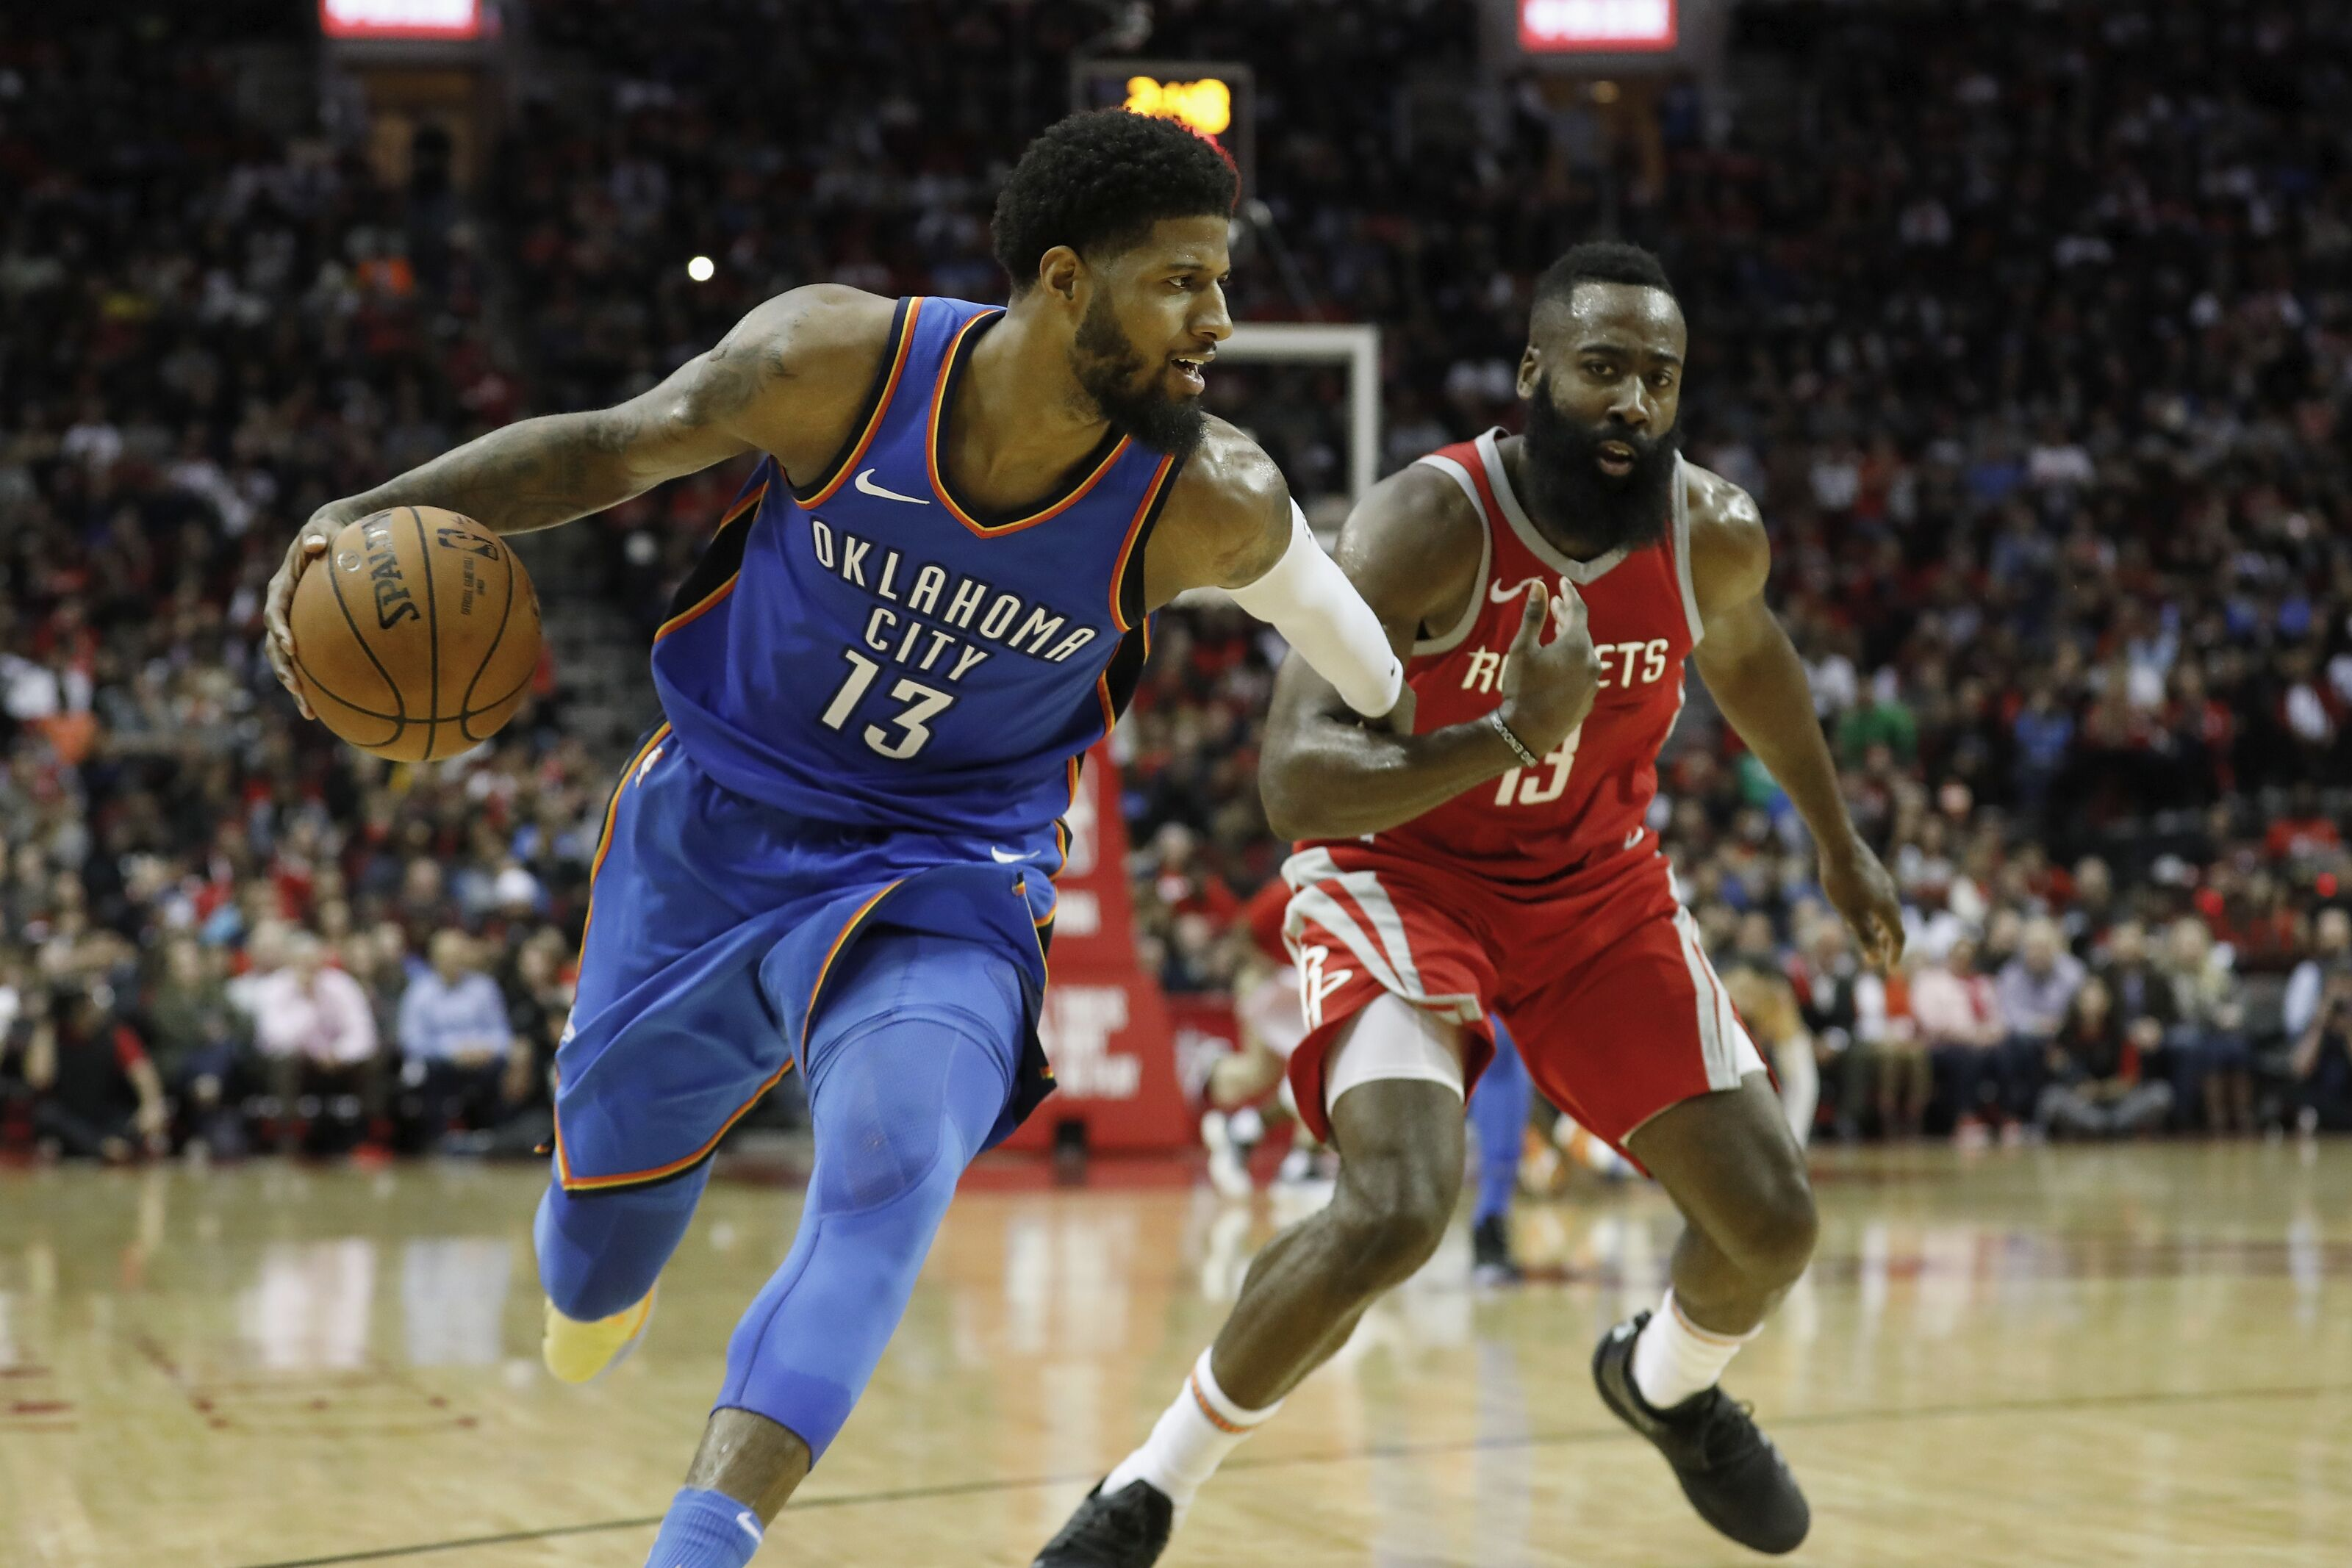 a3ca951d0ce4 Vegas short changes OKC Thunder potential via 7th best odds to win 2019  title